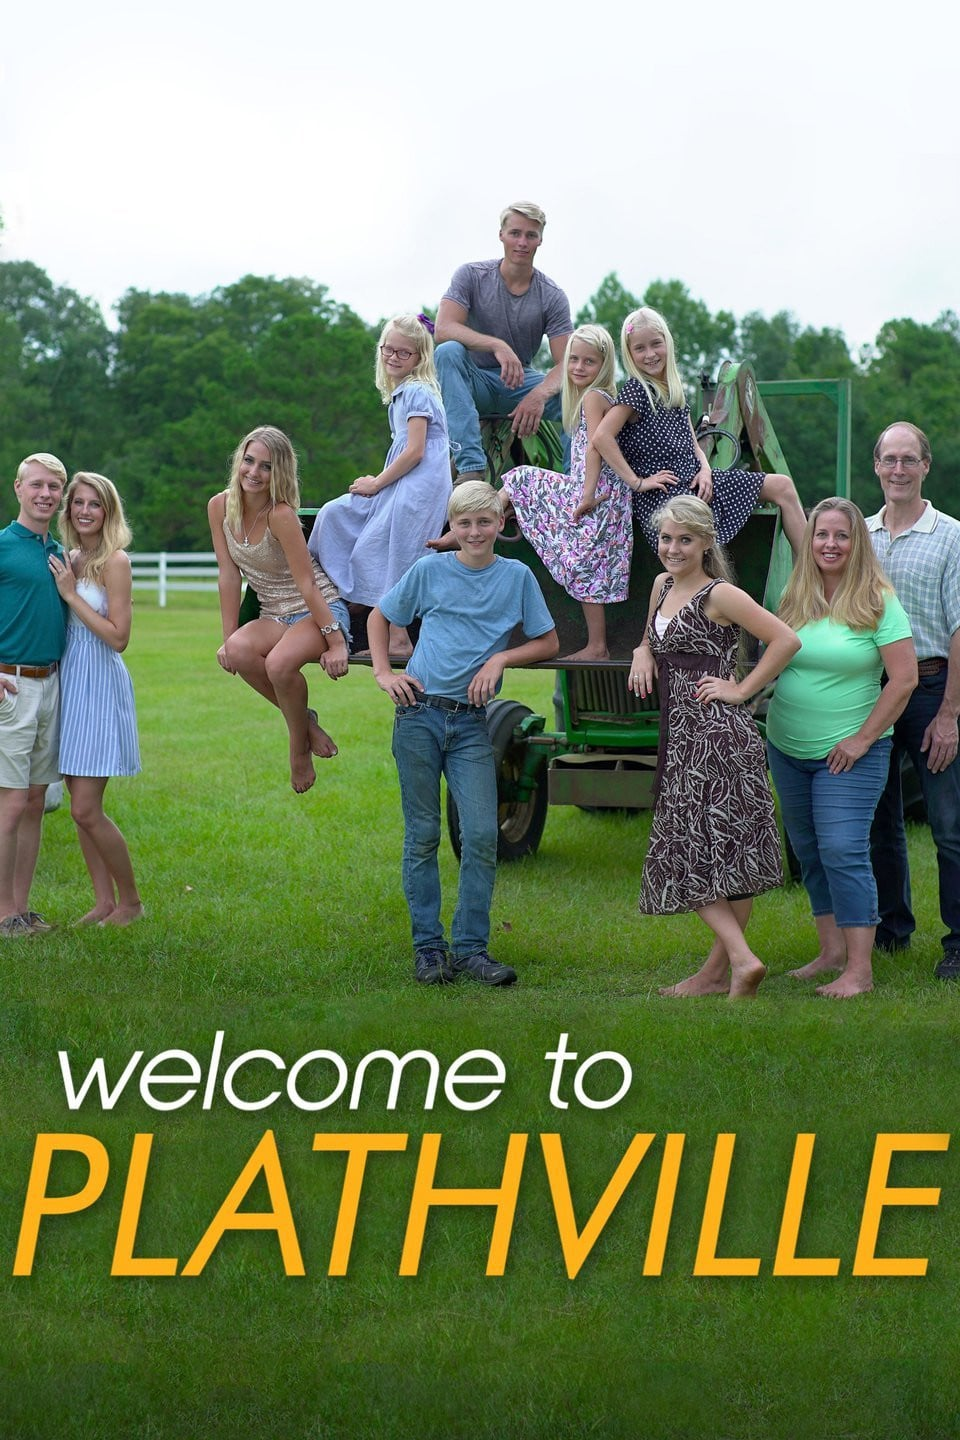 Welcome to Plathville poster